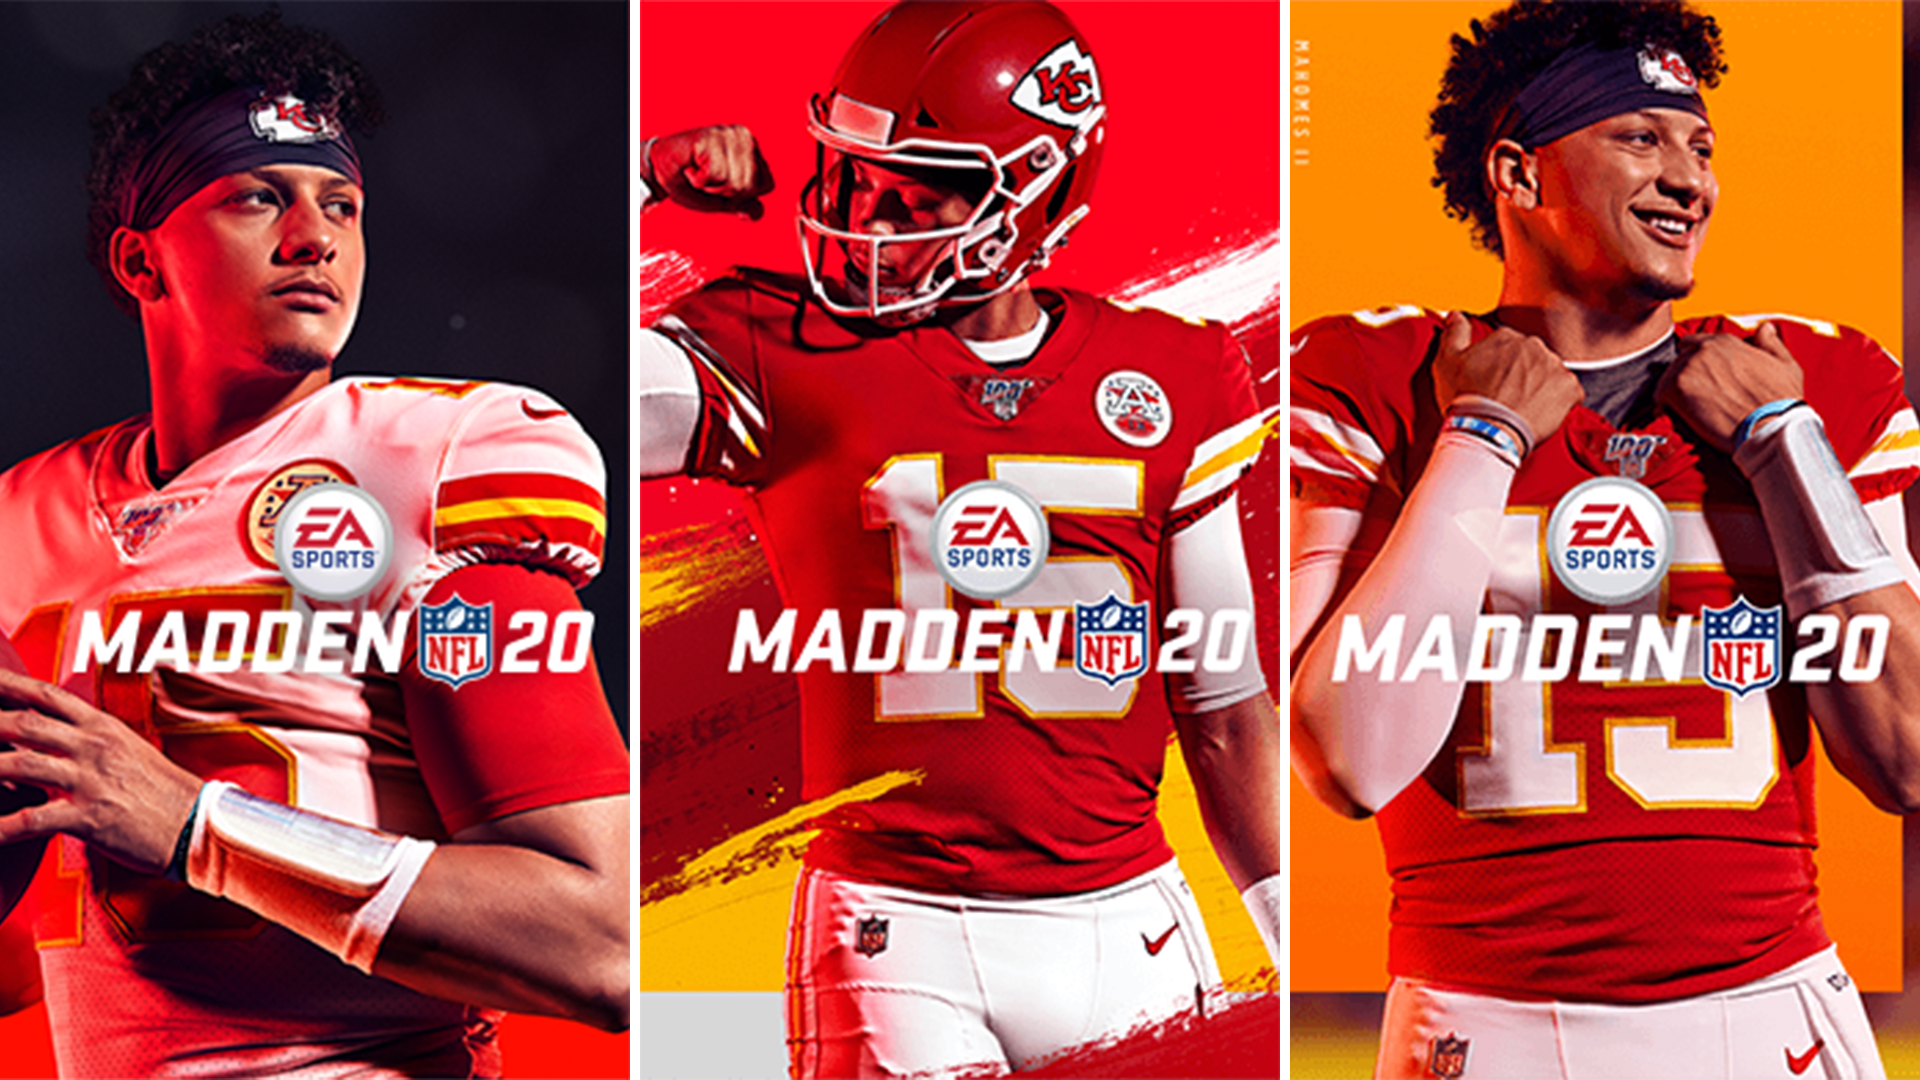 Nfl Madden 20 Game Release Date Cover Picture New Features Xbox Price Early Access And More Madden Nfl Nfl Ps4 Or Xbox One